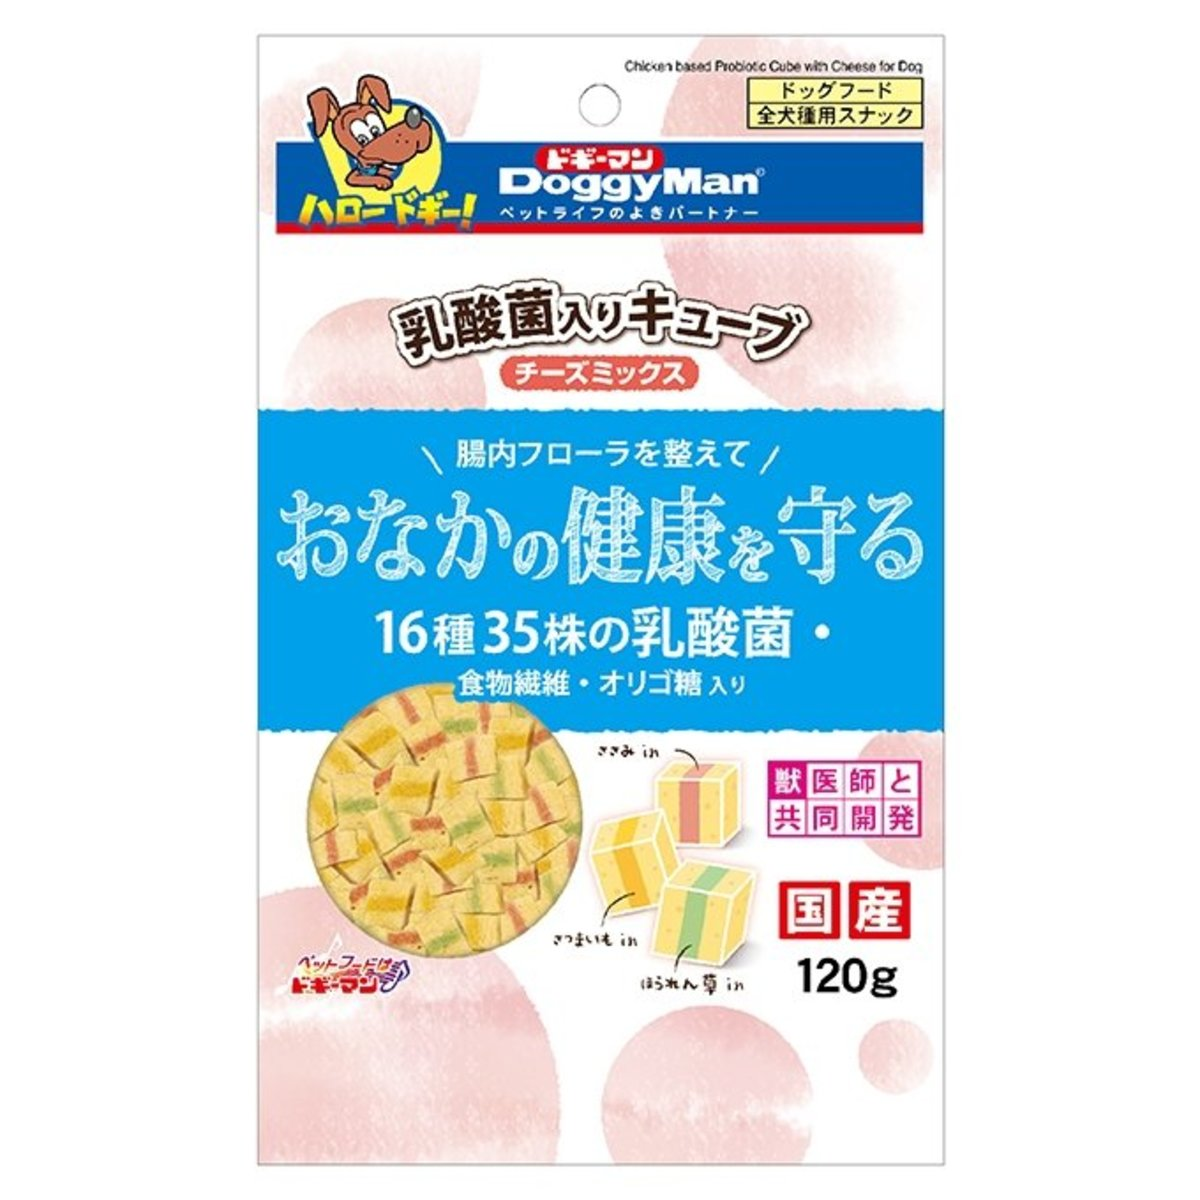 Chicken based Probiotic Cube with Cheese (120g) #82219 B4